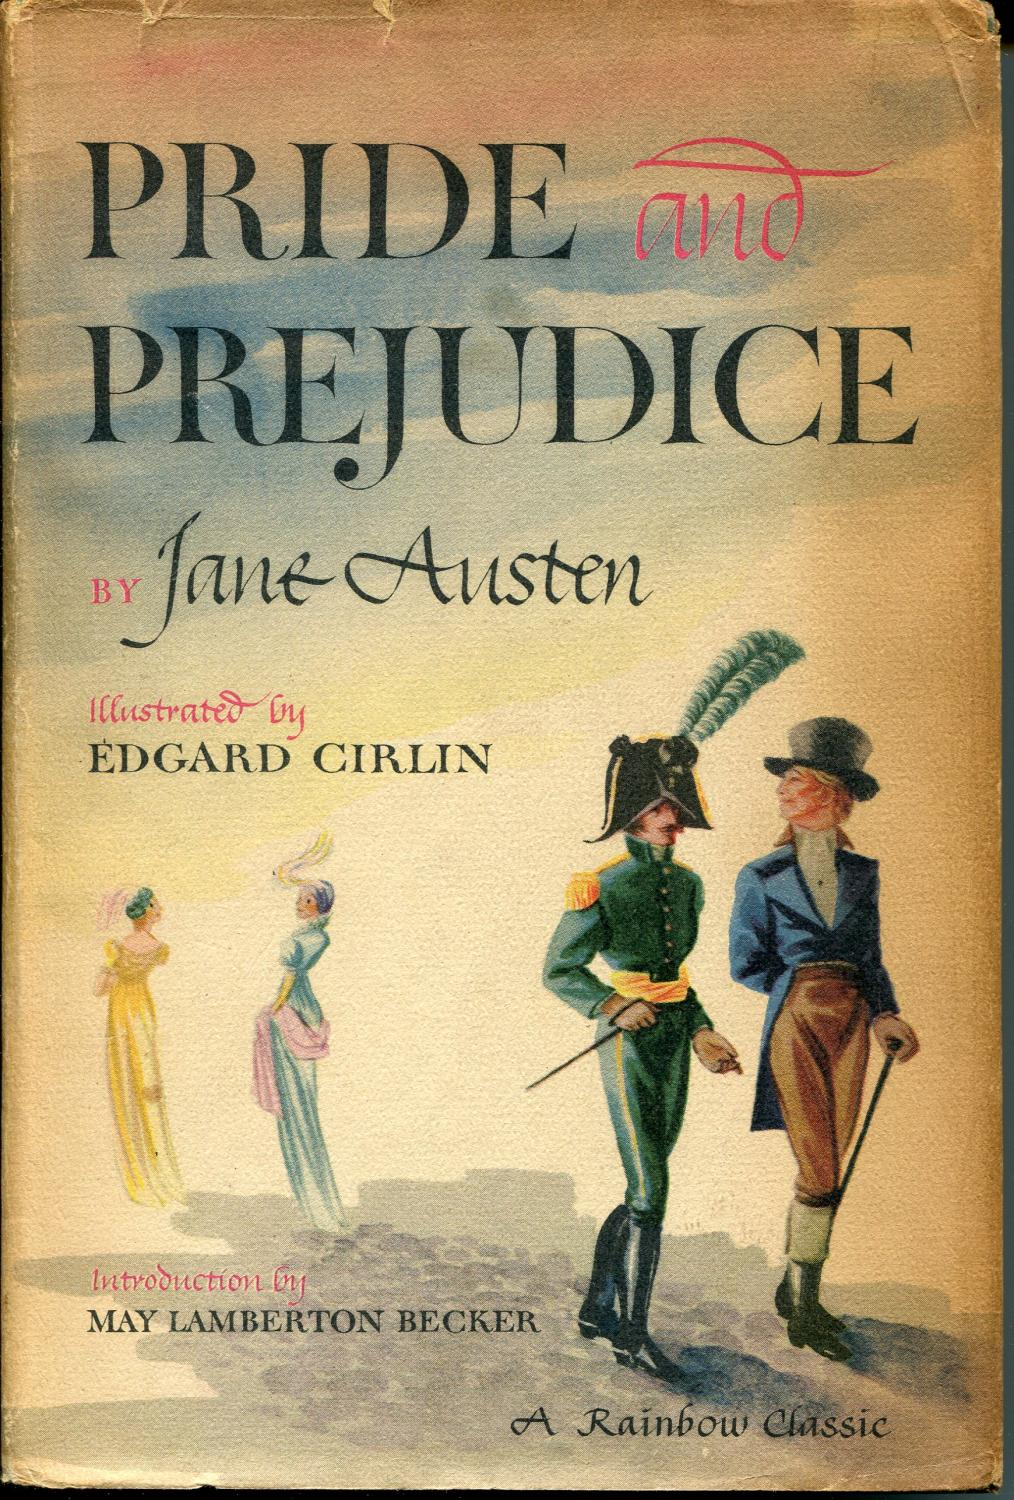 the confidante in the novel pride and prejudice by jane austen Buy a novel journal: pride and prejudice by jane austen from amazon's fiction books store everyday low prices on a huge range of new releases and classic fiction.